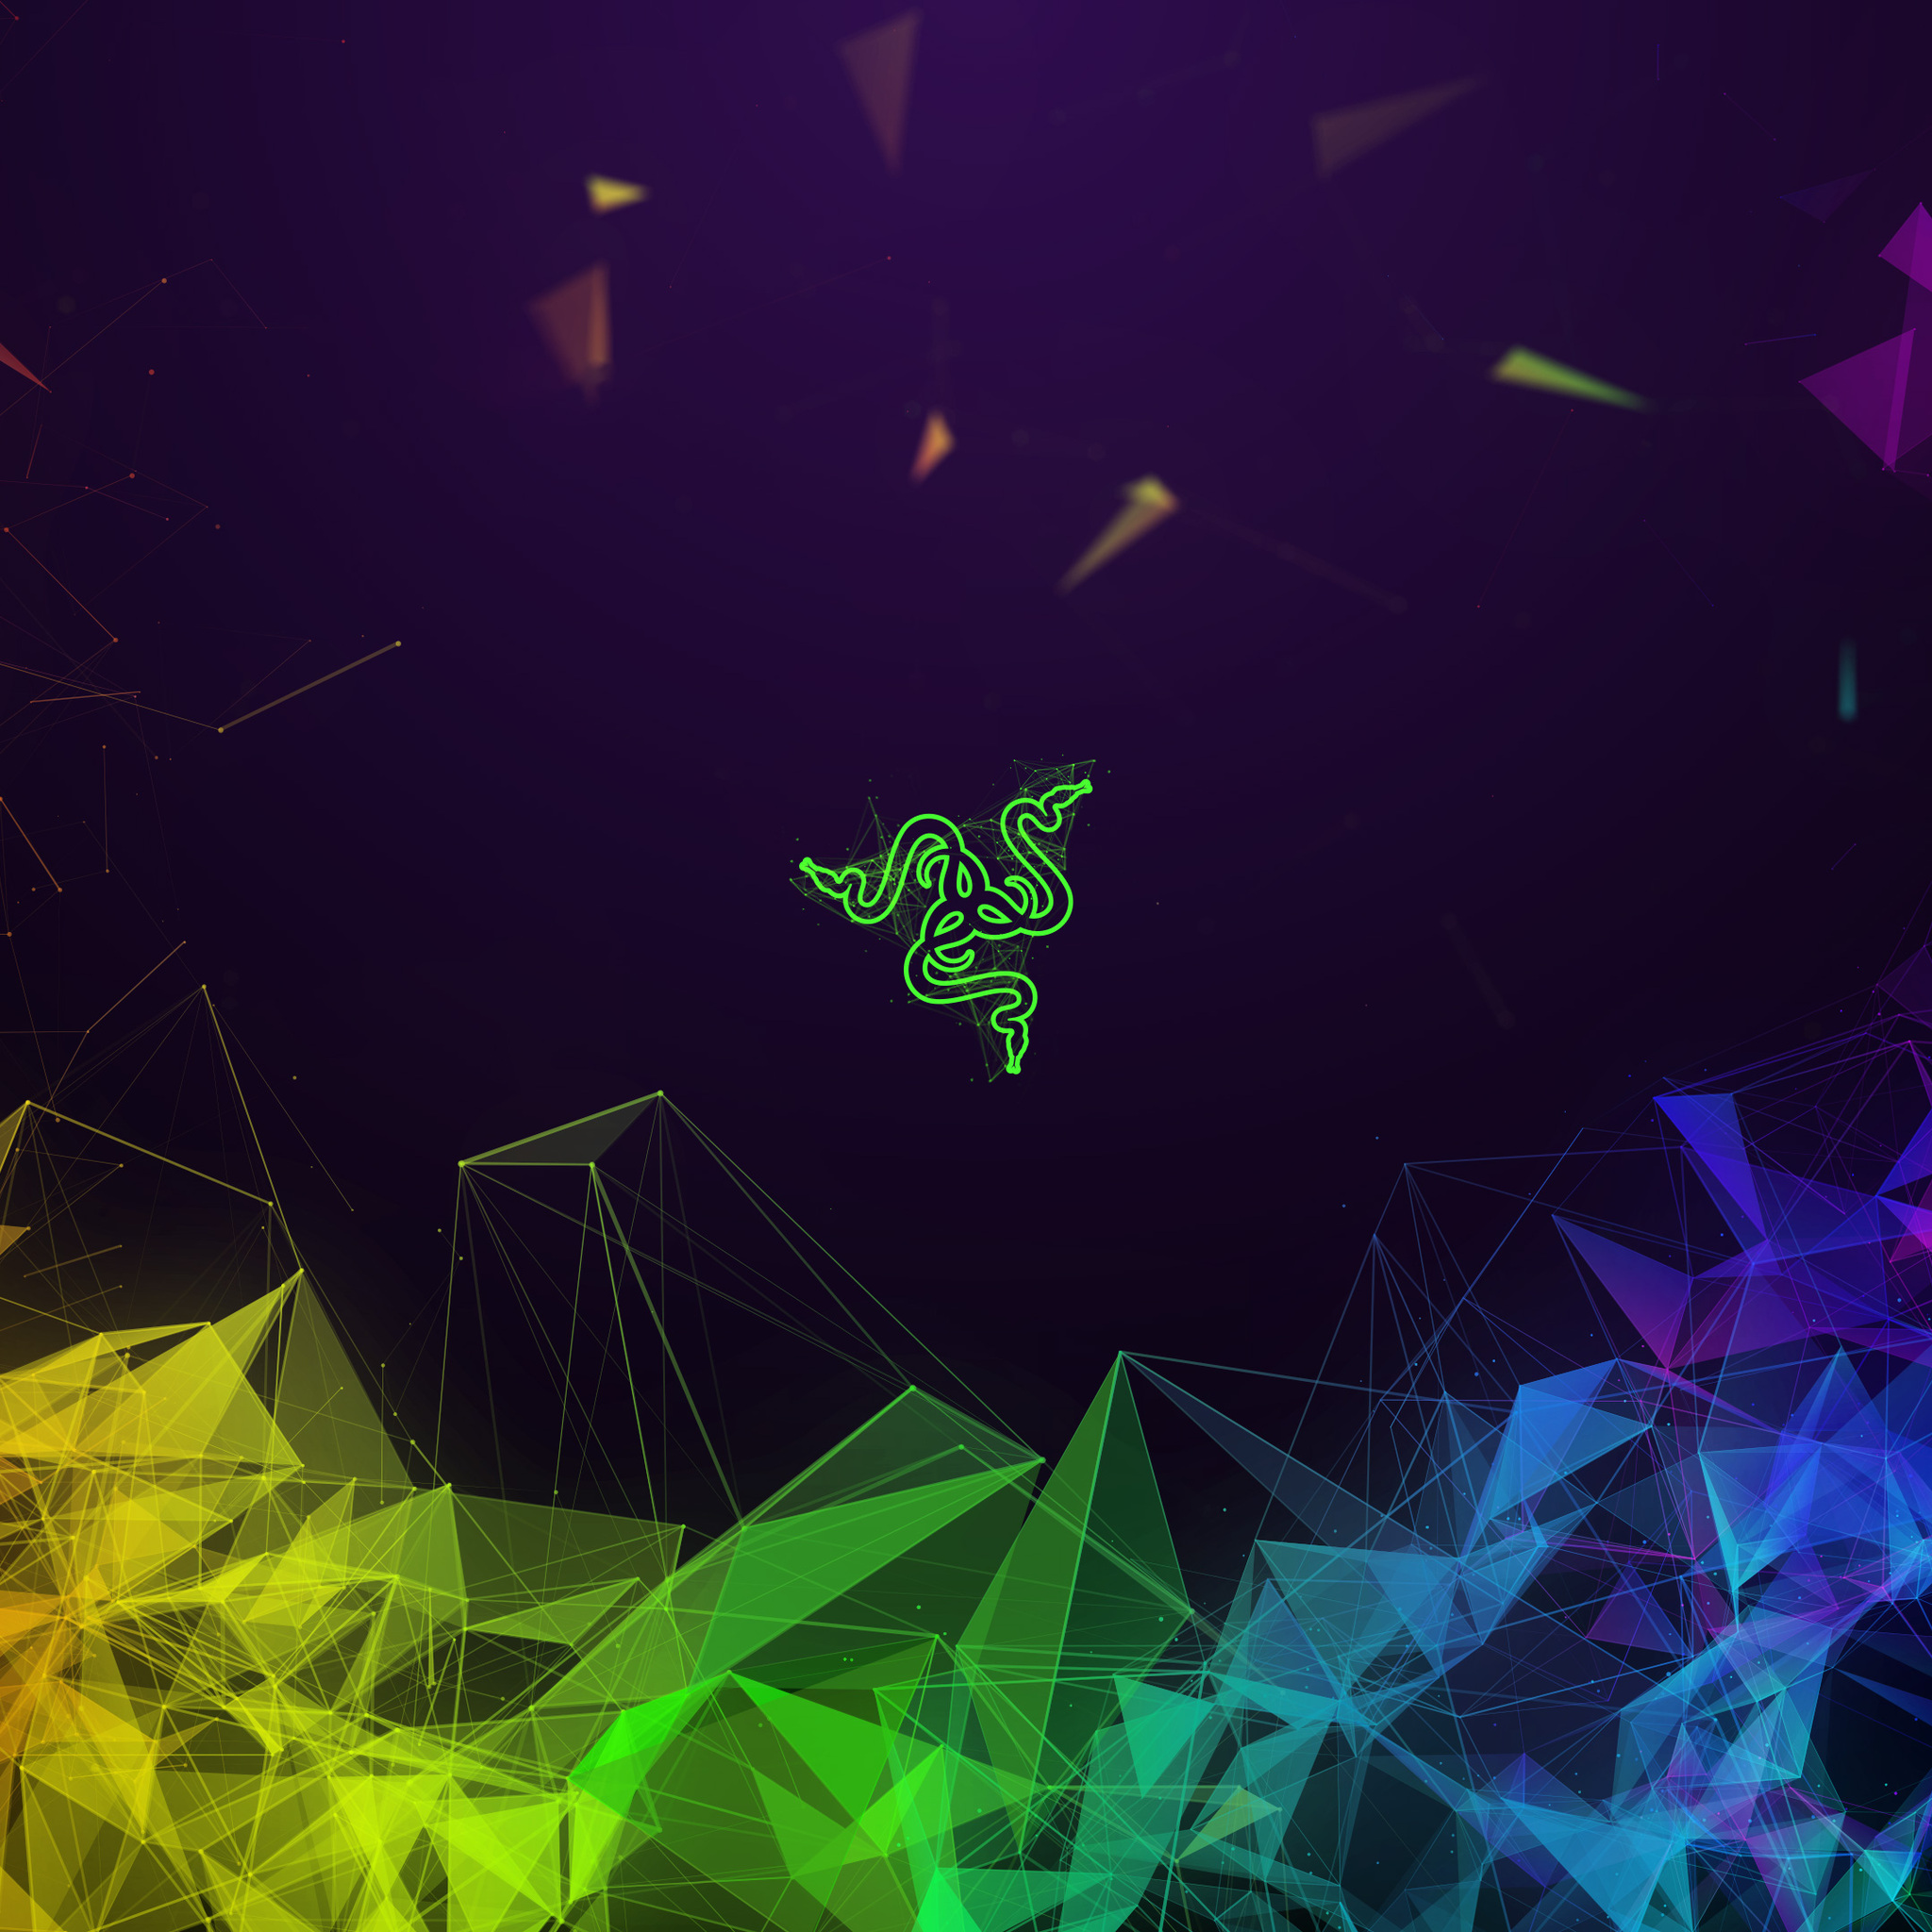 2048x2048 Razer Colorful Abstract 4k Ipad Air HD 4k